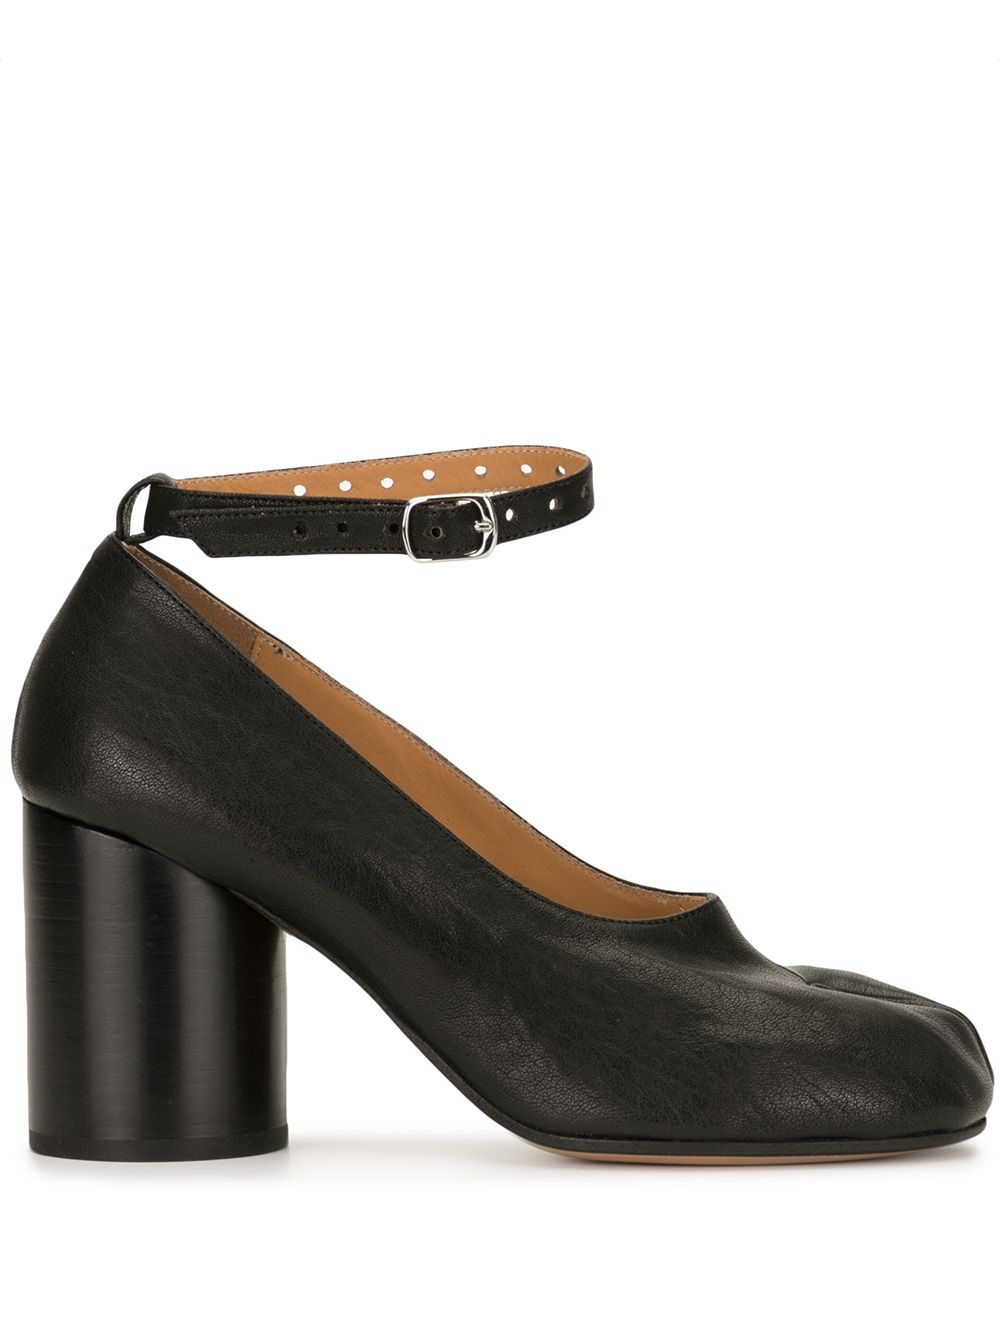 MAISON MARGIELA WOMEN MARYJANE HIGH HEEL